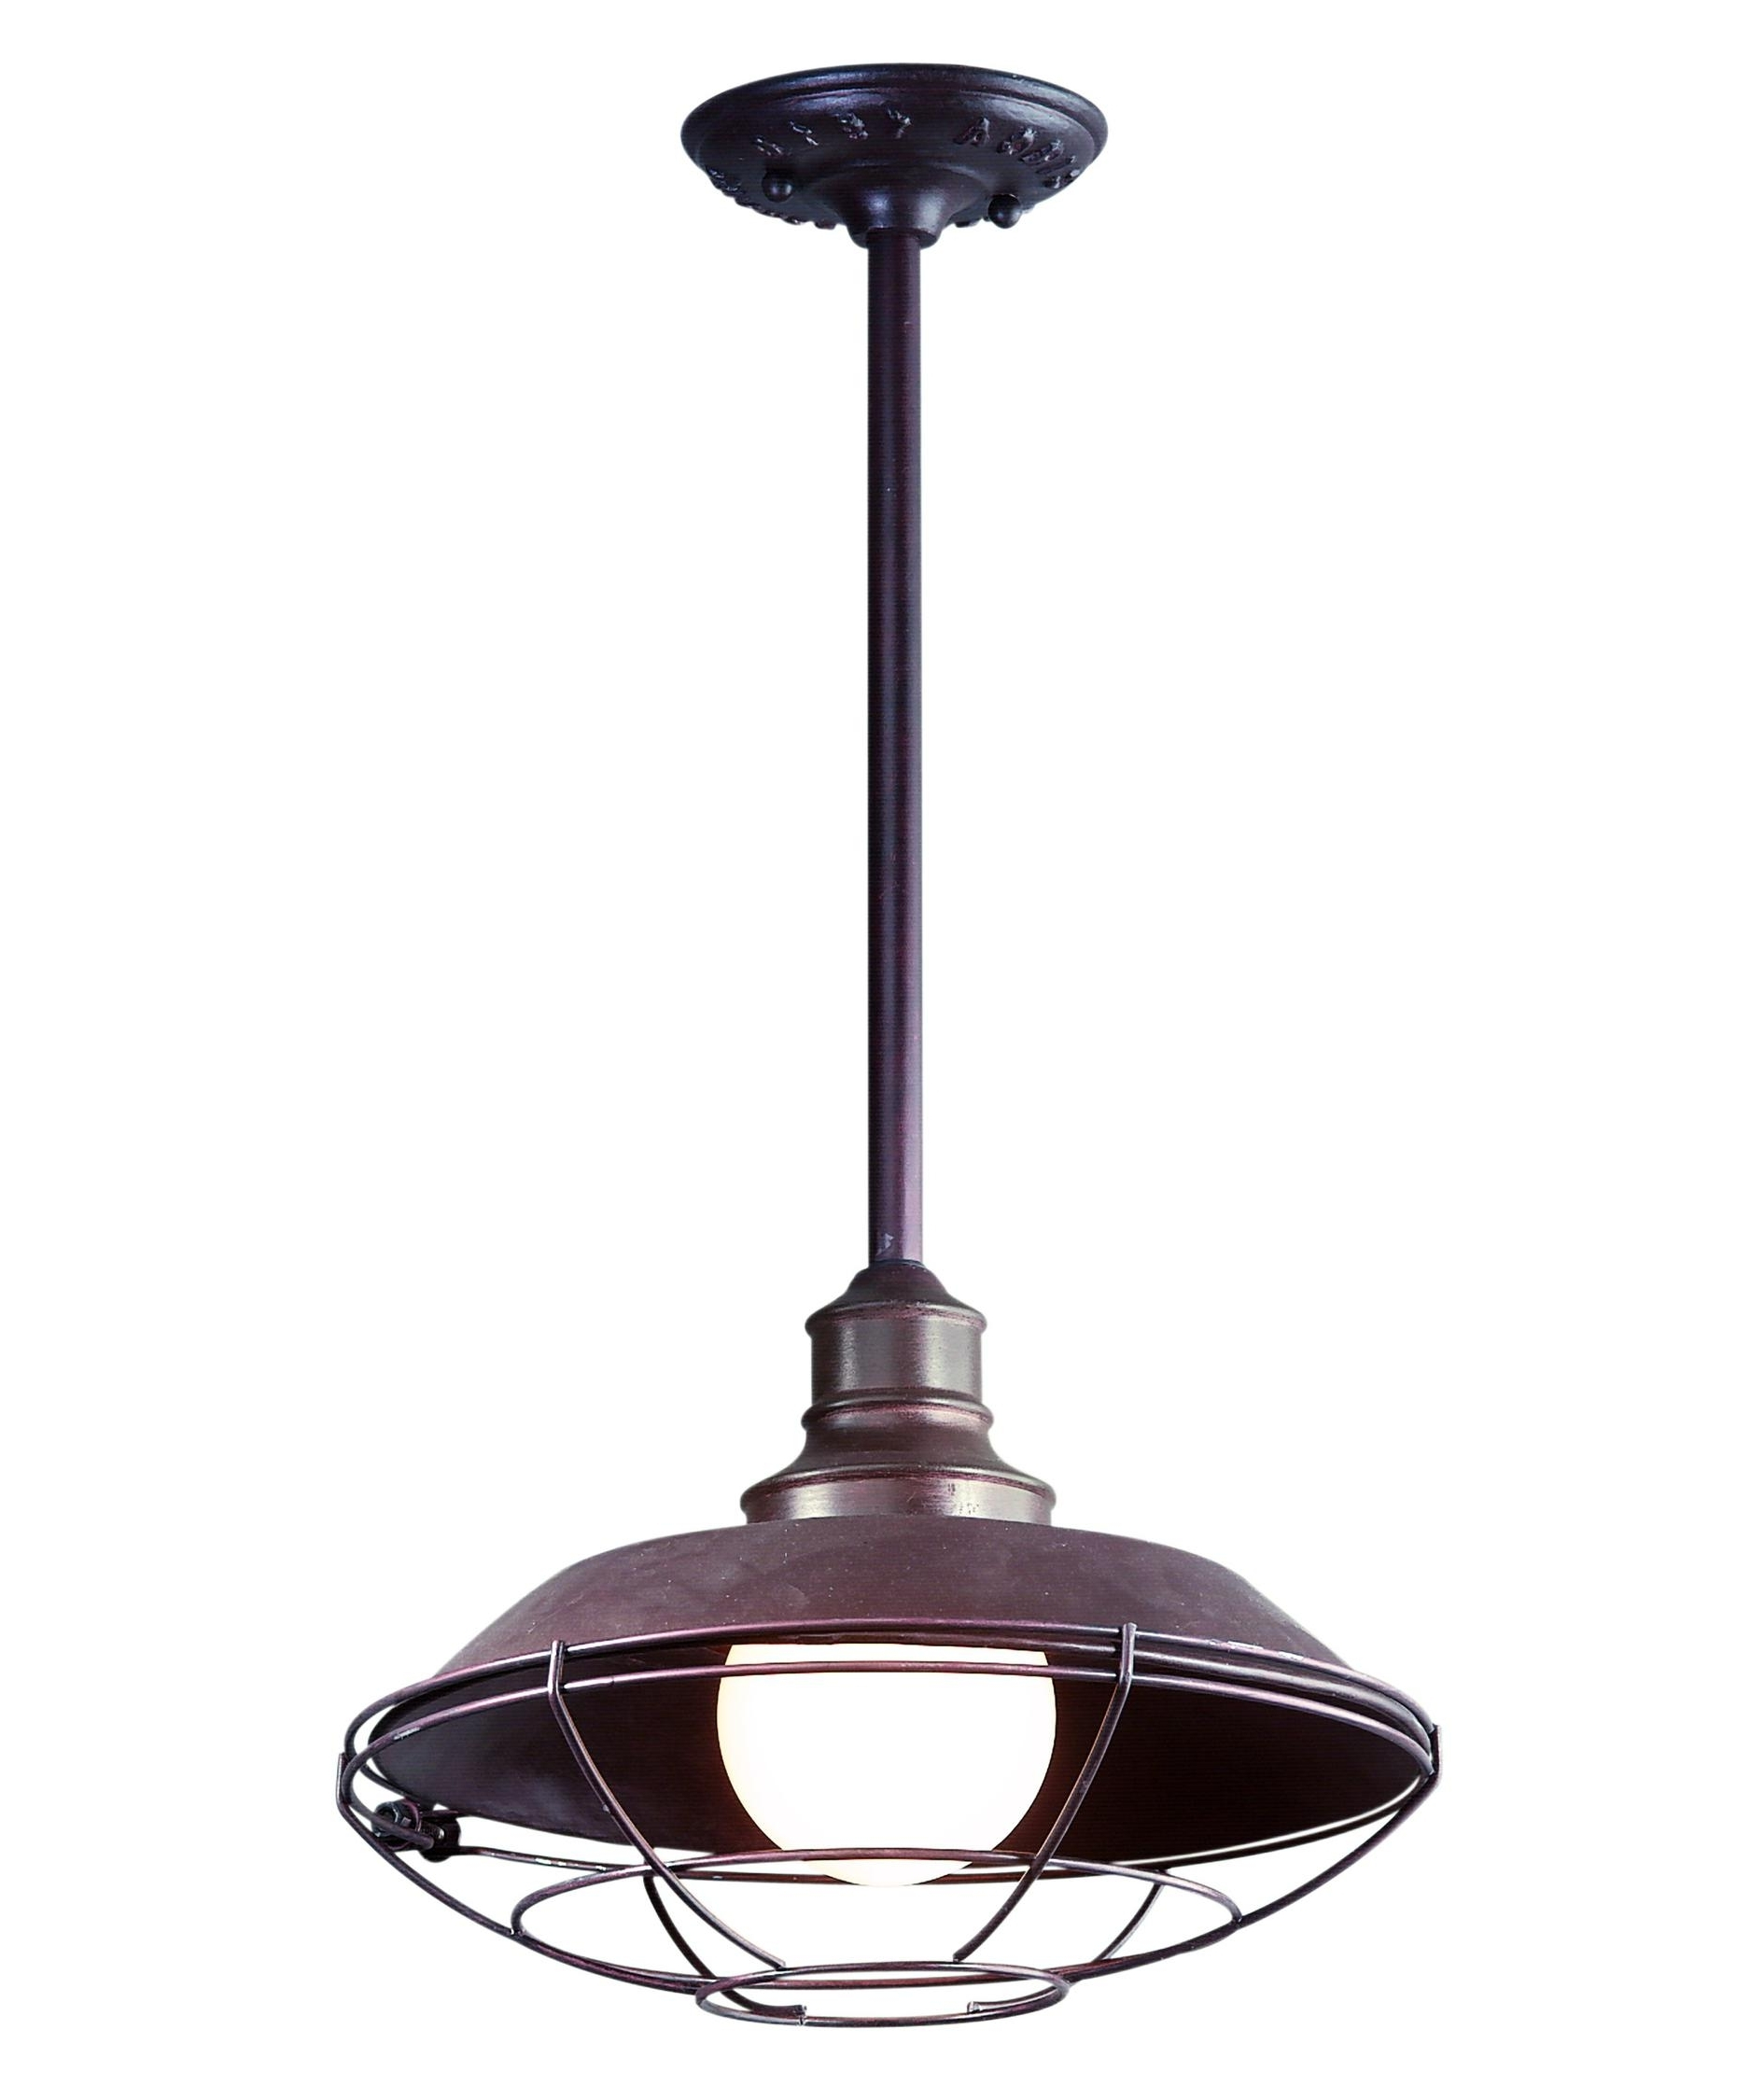 Troy Lighting F9273 Circa 1910 12 Inch Wide 1 Light Outdoor Hanging Throughout 2018 Outdoor Rated Hanging Lights (View 3 of 20)